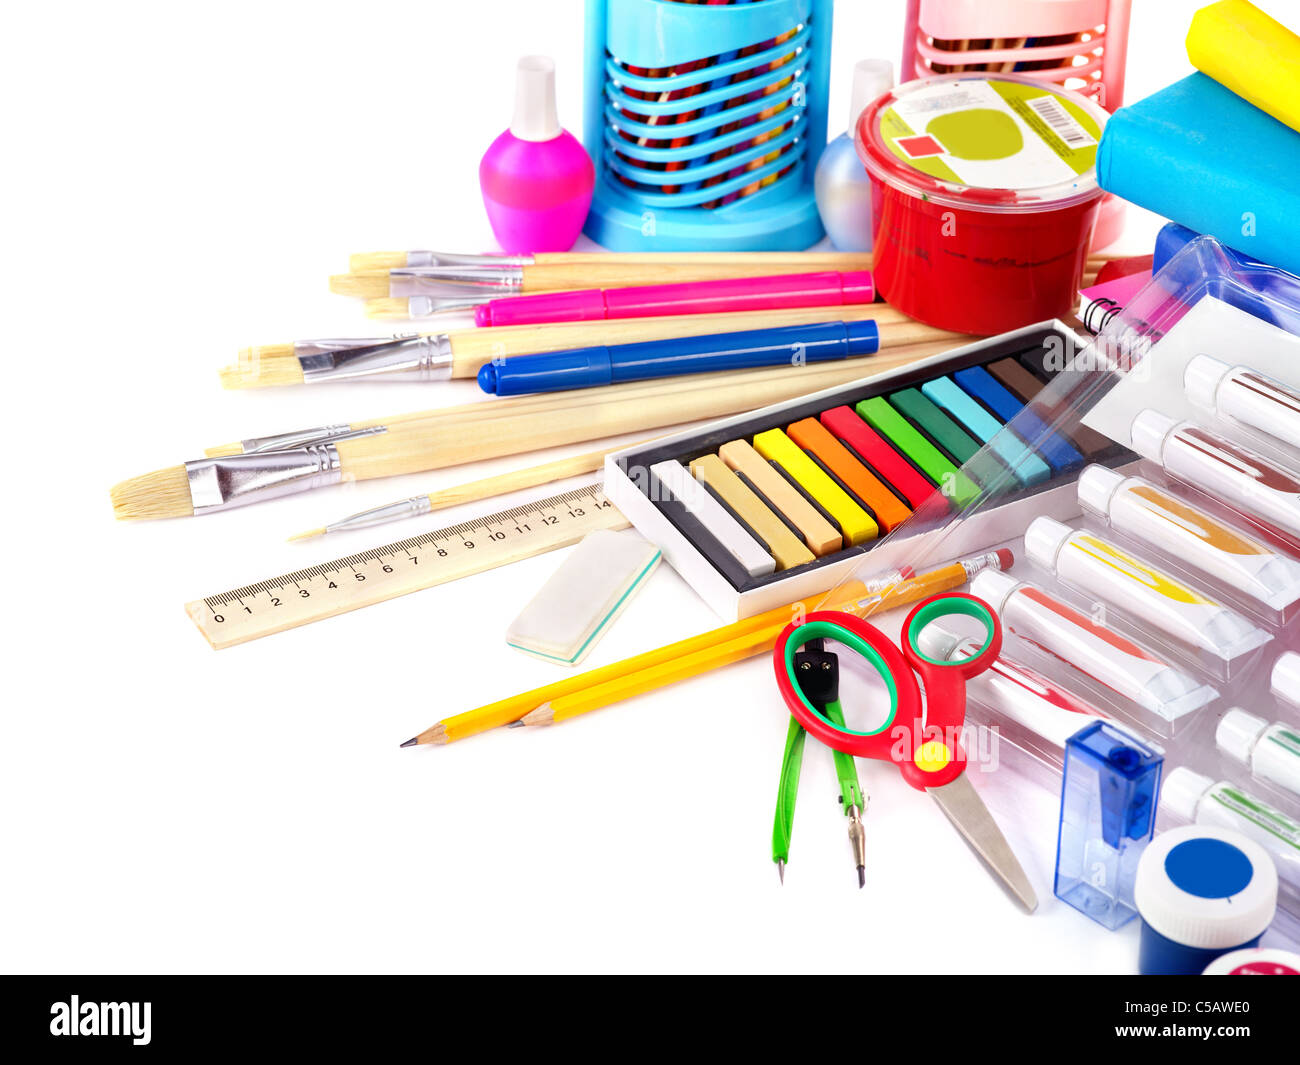 Group art school supplies writing utensils stock photo 37733528 group art school supplies writing utensils voltagebd Images